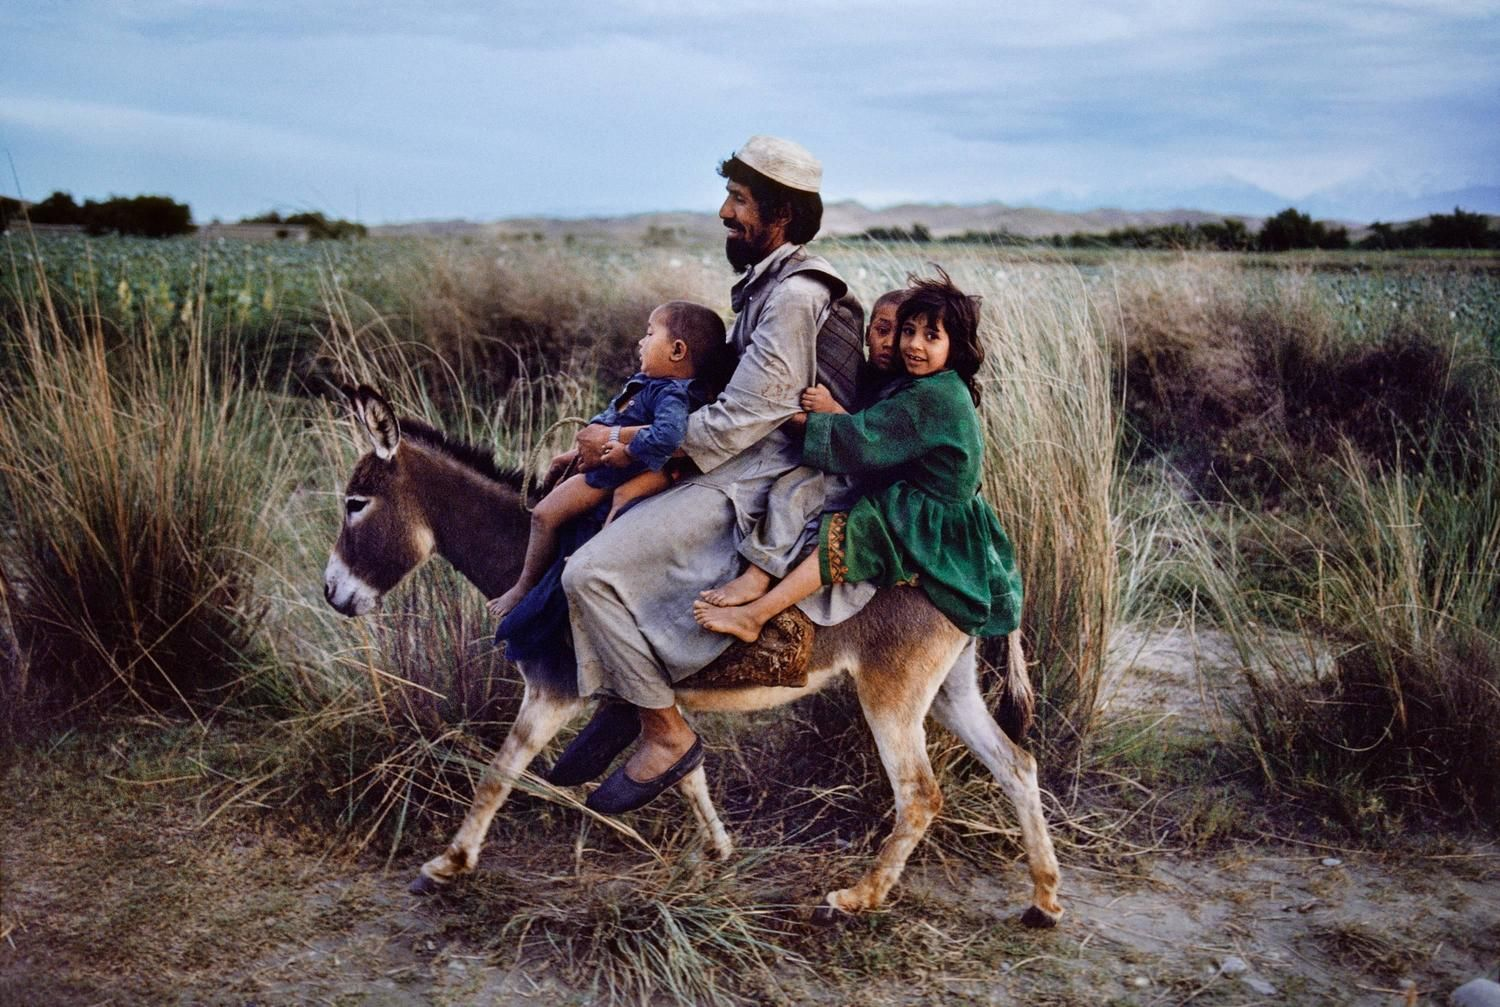 Steve McCurry . Family Rides Donkey, Afghanistan, 2003